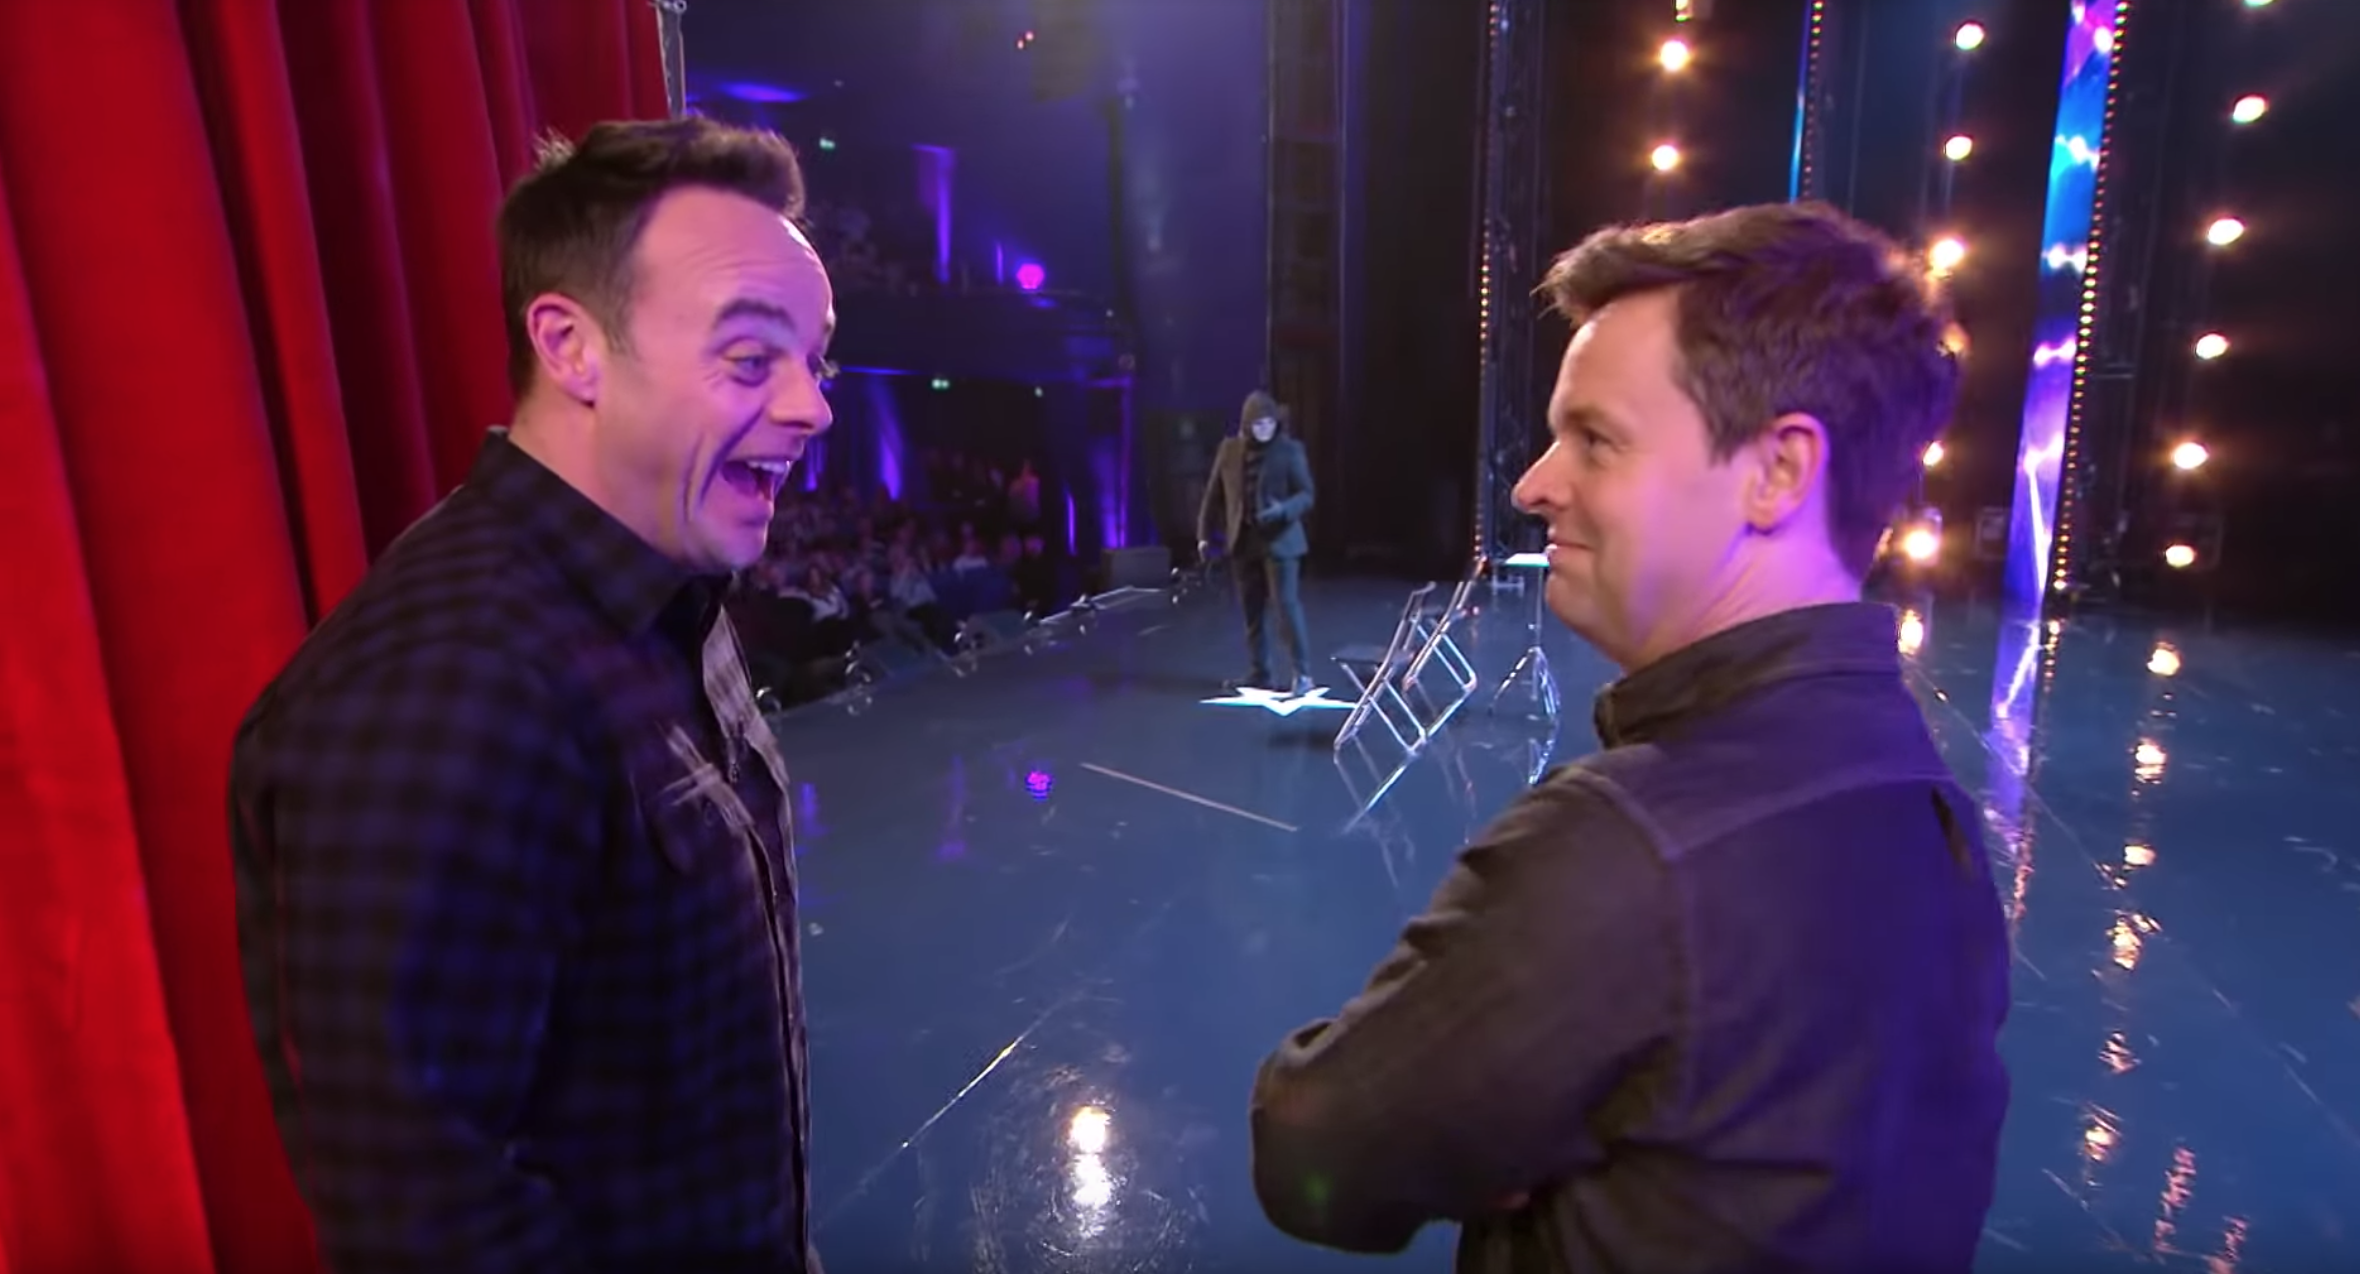 Declan Donnelly shocked by Ant McPartlin's Britain's Got Talent joke about his wife